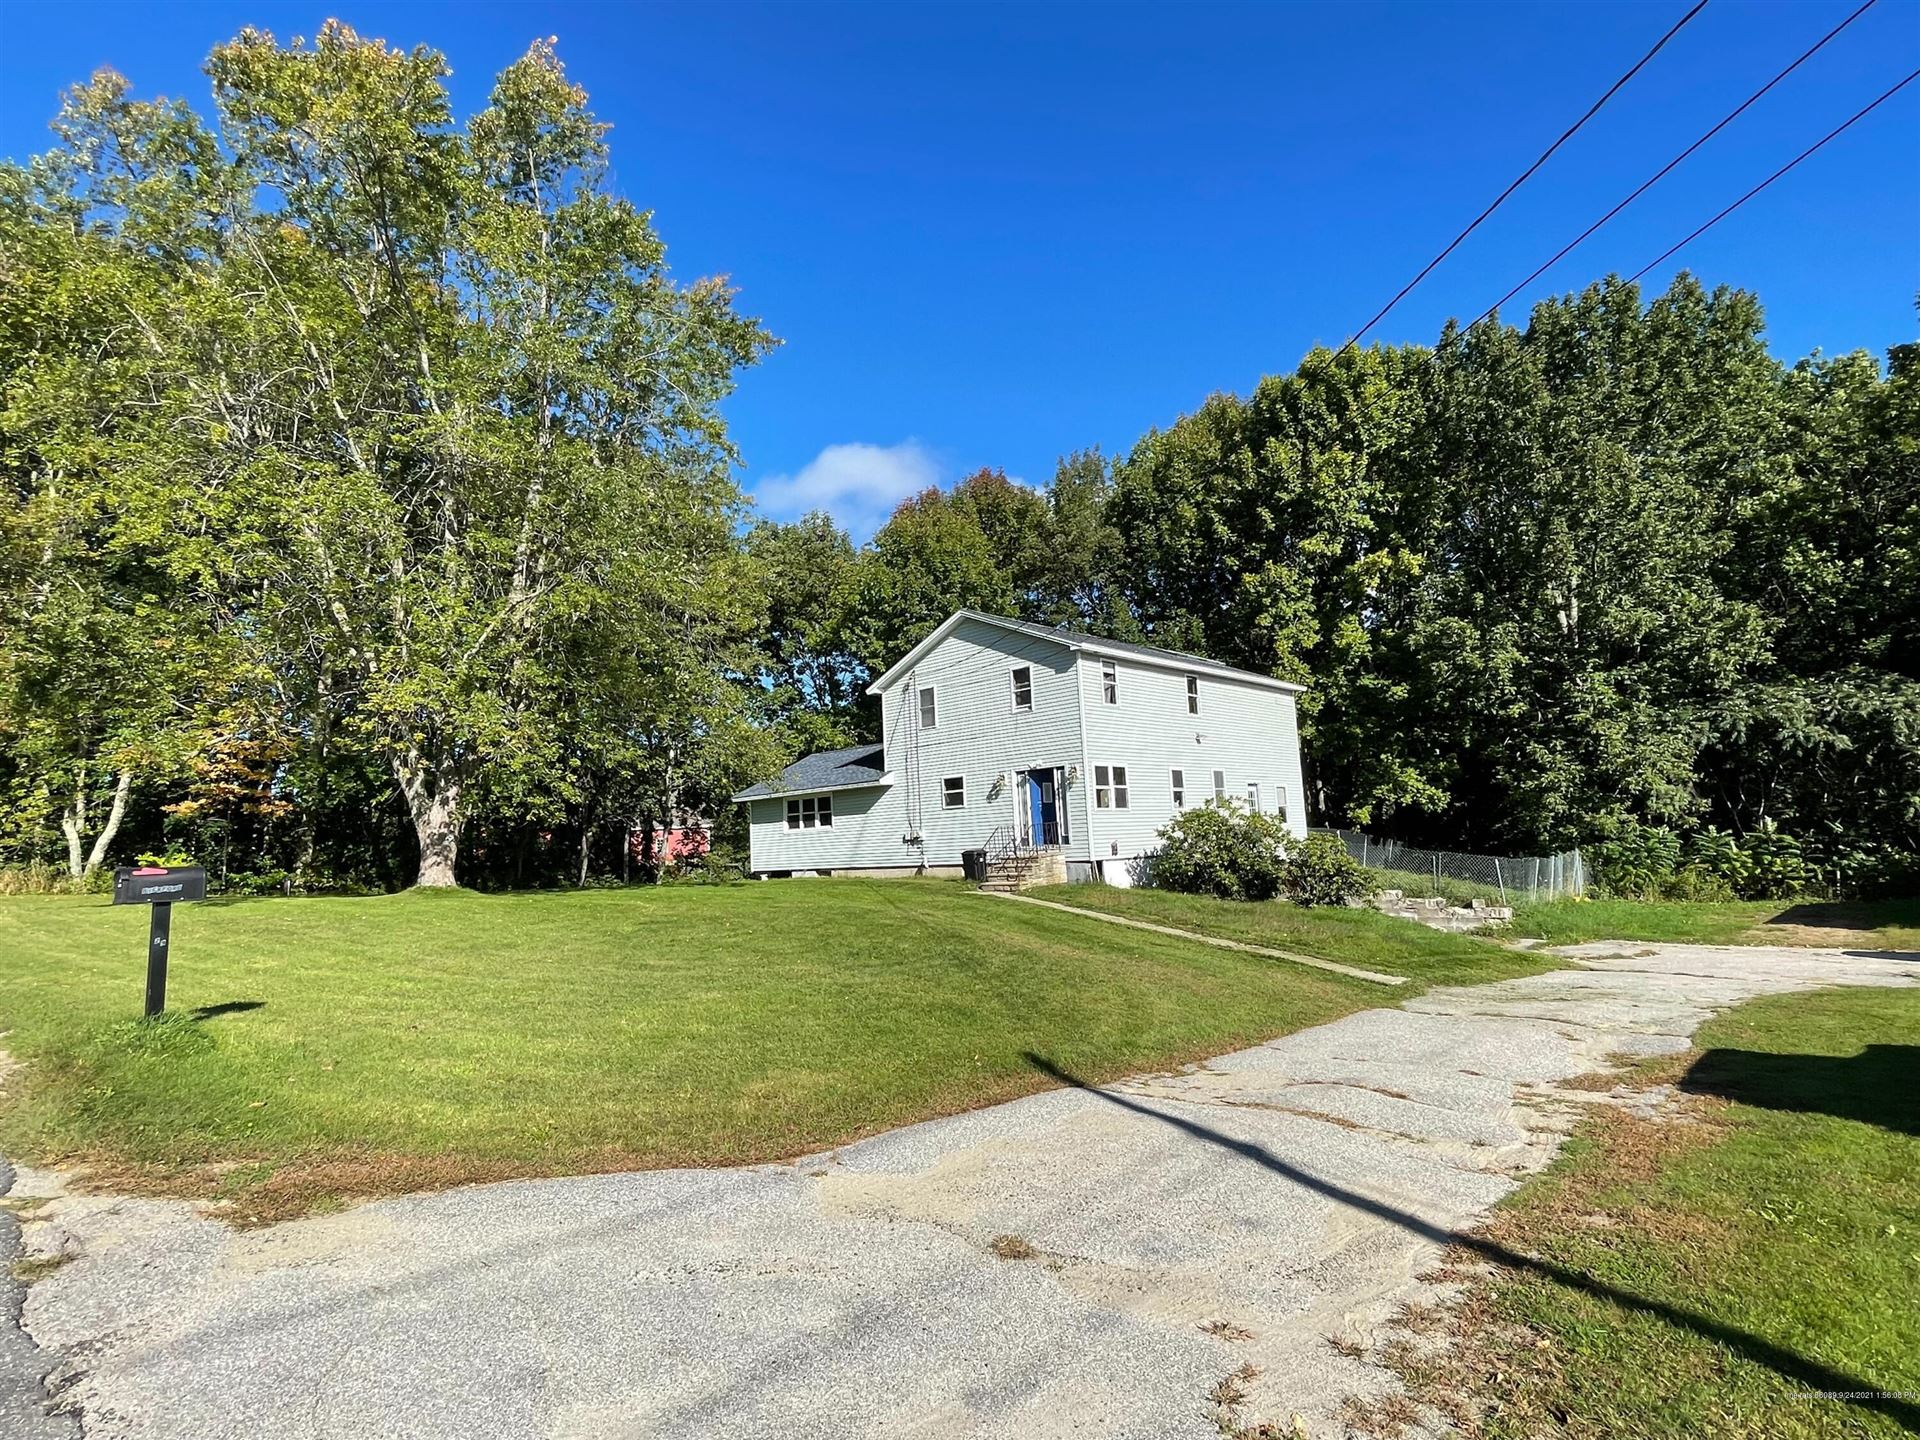 Photo of 29 Cemetery Road, Monmouth, ME 04259 (MLS # 1510067)